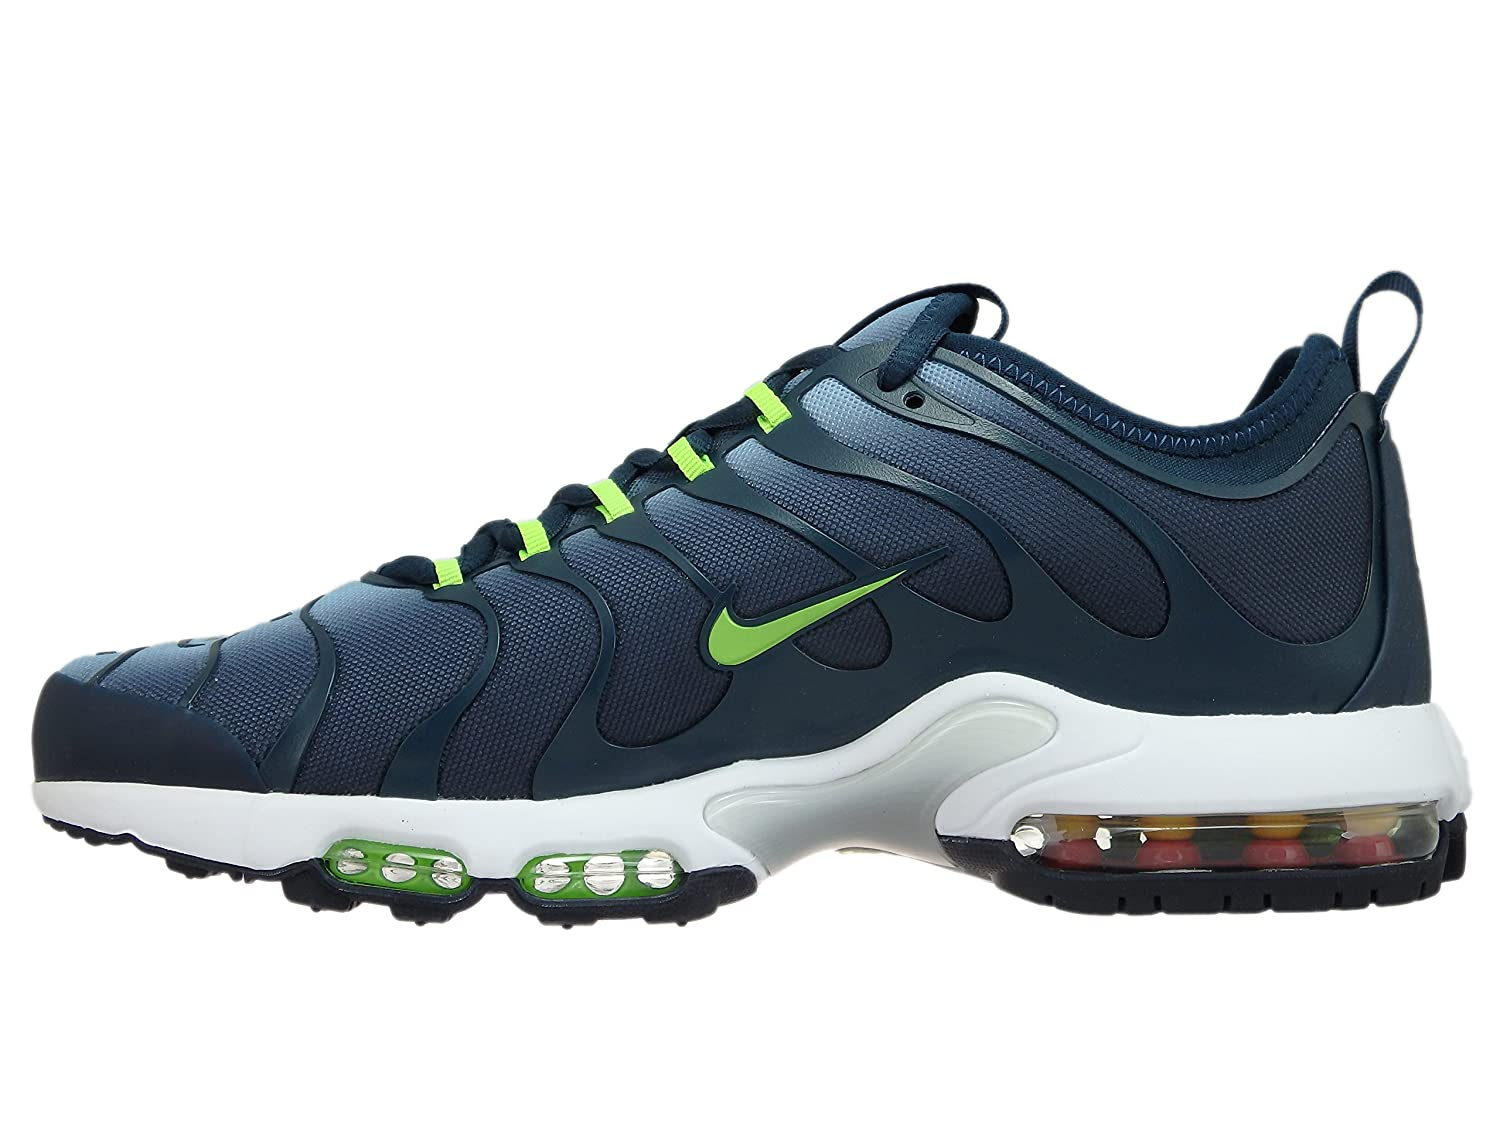 37f2c2c7393b ... Nike Air Max Plus TN Tuned 1 Ultra 898015-400 Mens Trainers UK 9 EU ...